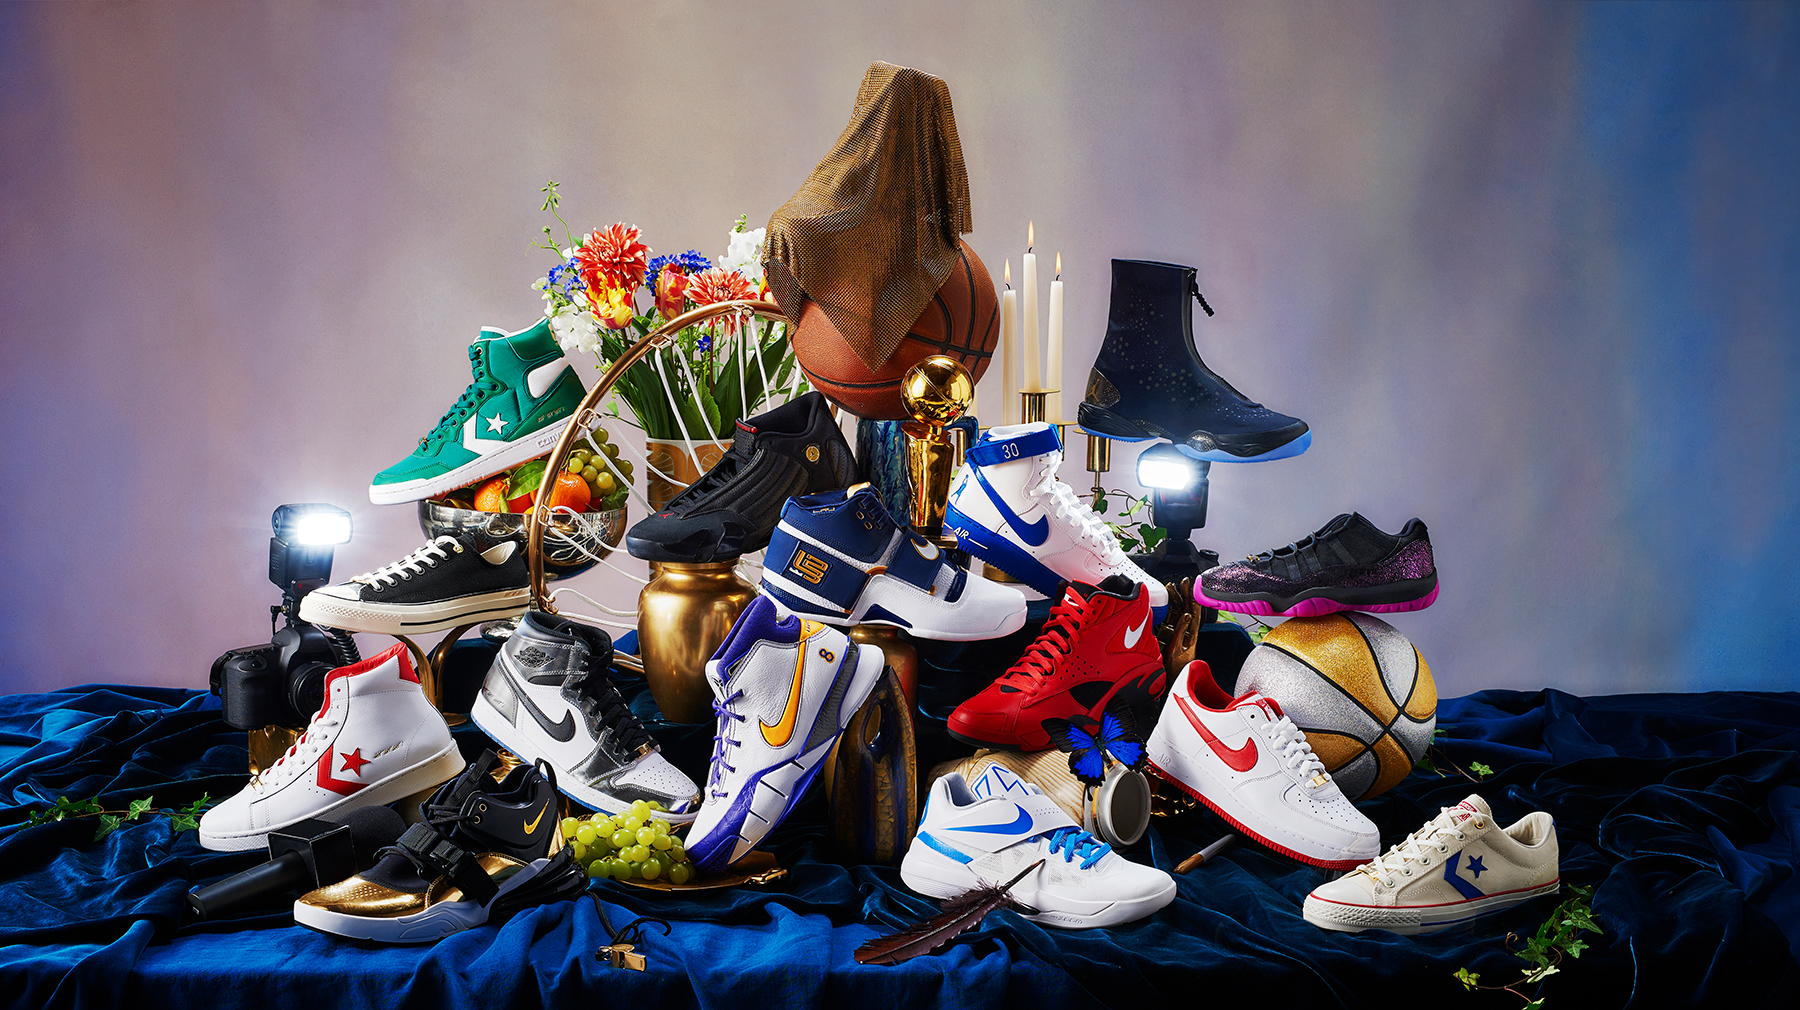 Nike Basketball Hd Wallpaper Nike Celebrates Historic Playoff Moments With Art Of A